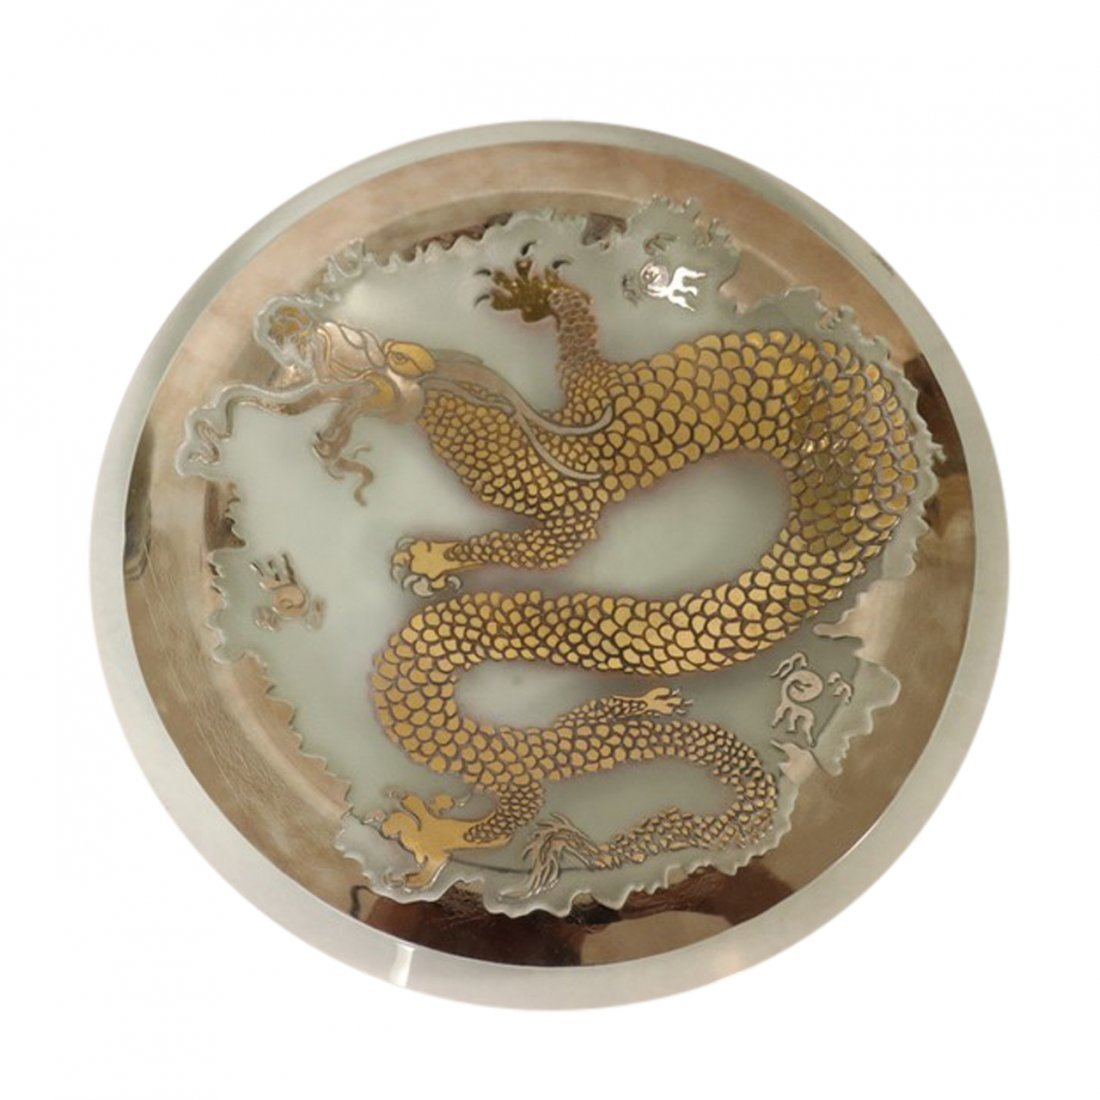 Art Glass Bowl with Dragon by Salvatore Polizzi